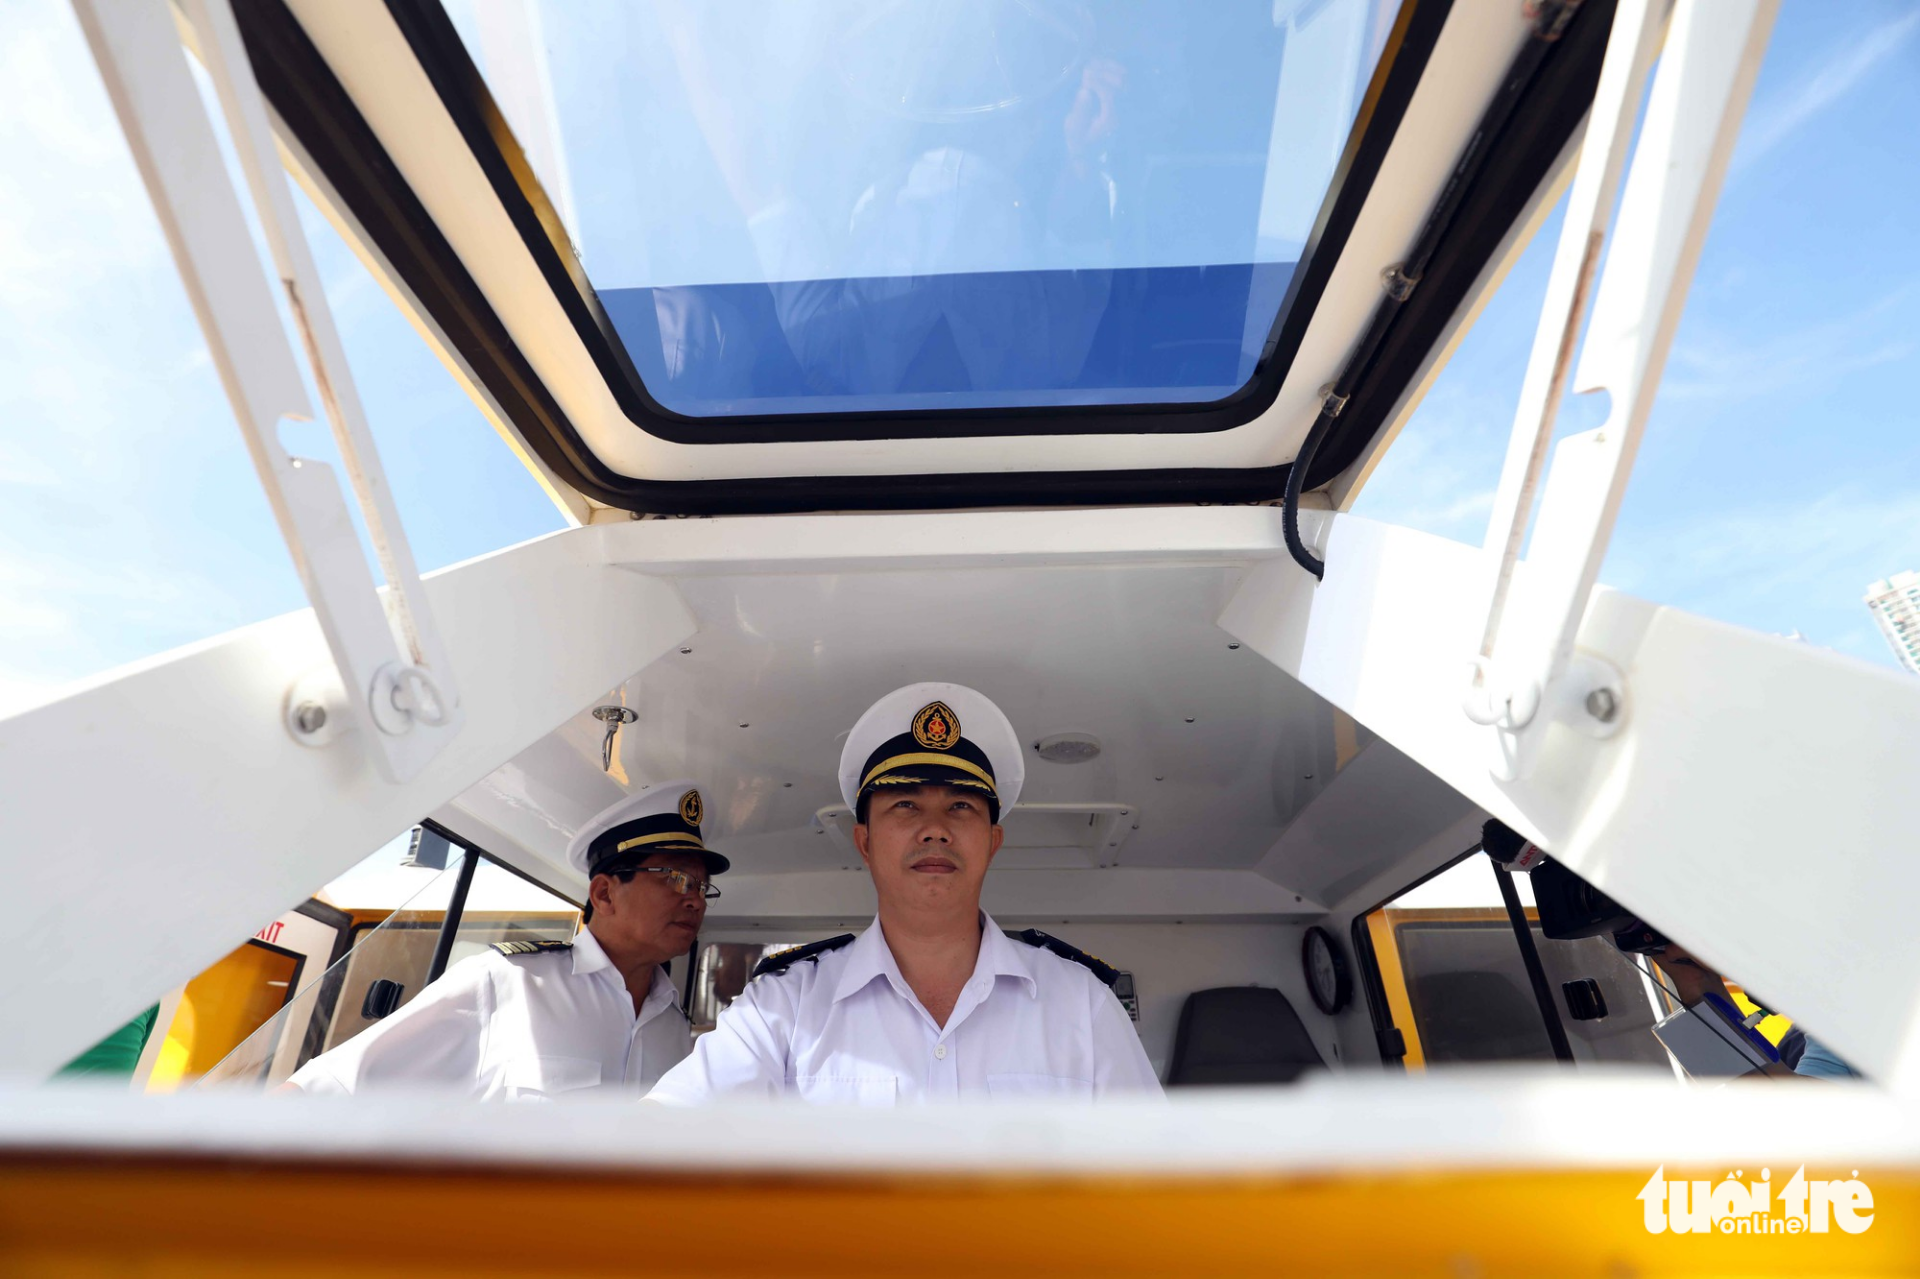 A captain steers the boat along the route No. 1.